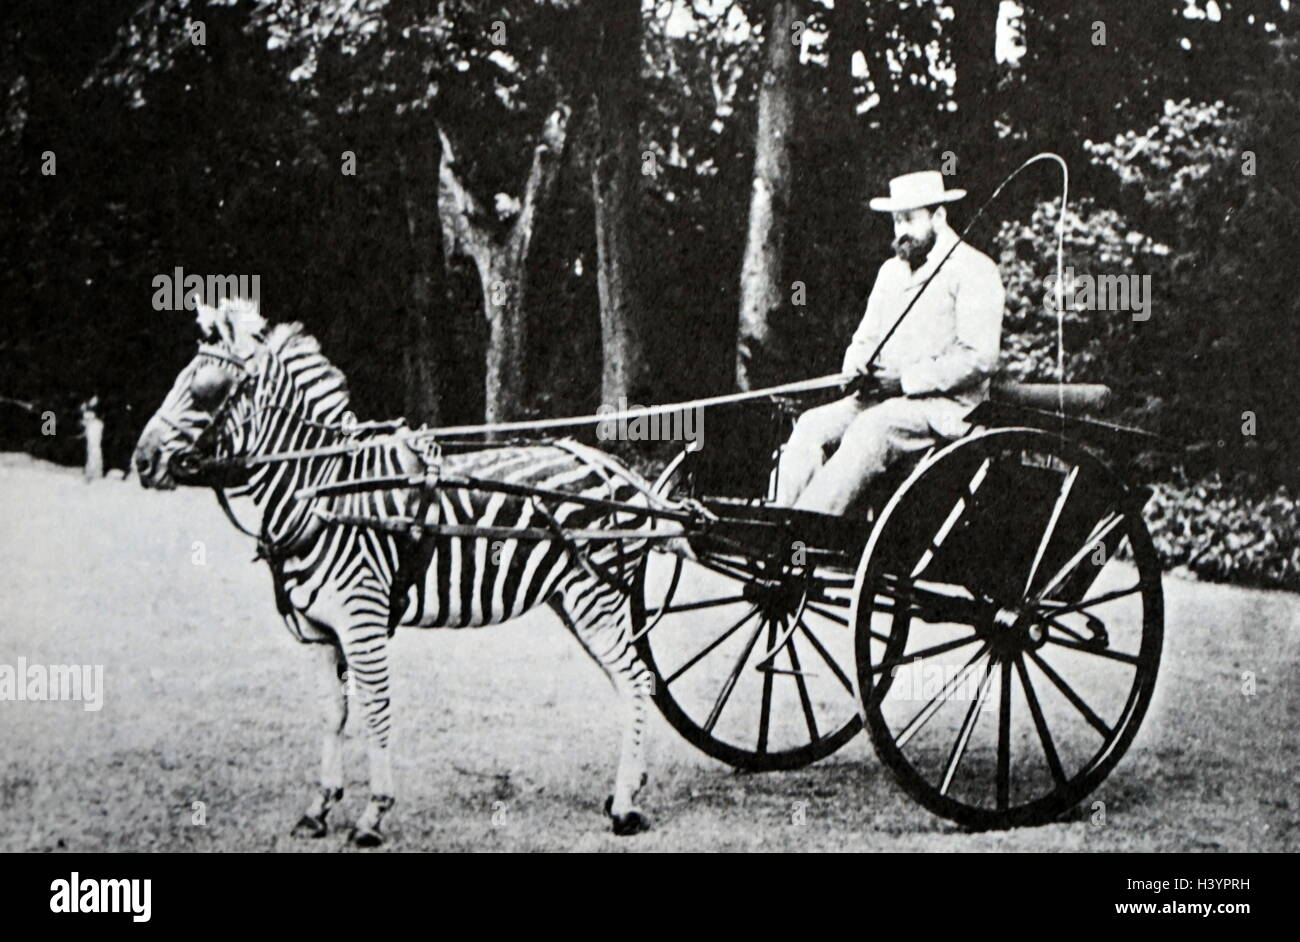 Lionel Walter Rothschild (1868-1937), 2nd Baron Rothschild, rides in carriage drawn by a zebra 1895 - Stock Image